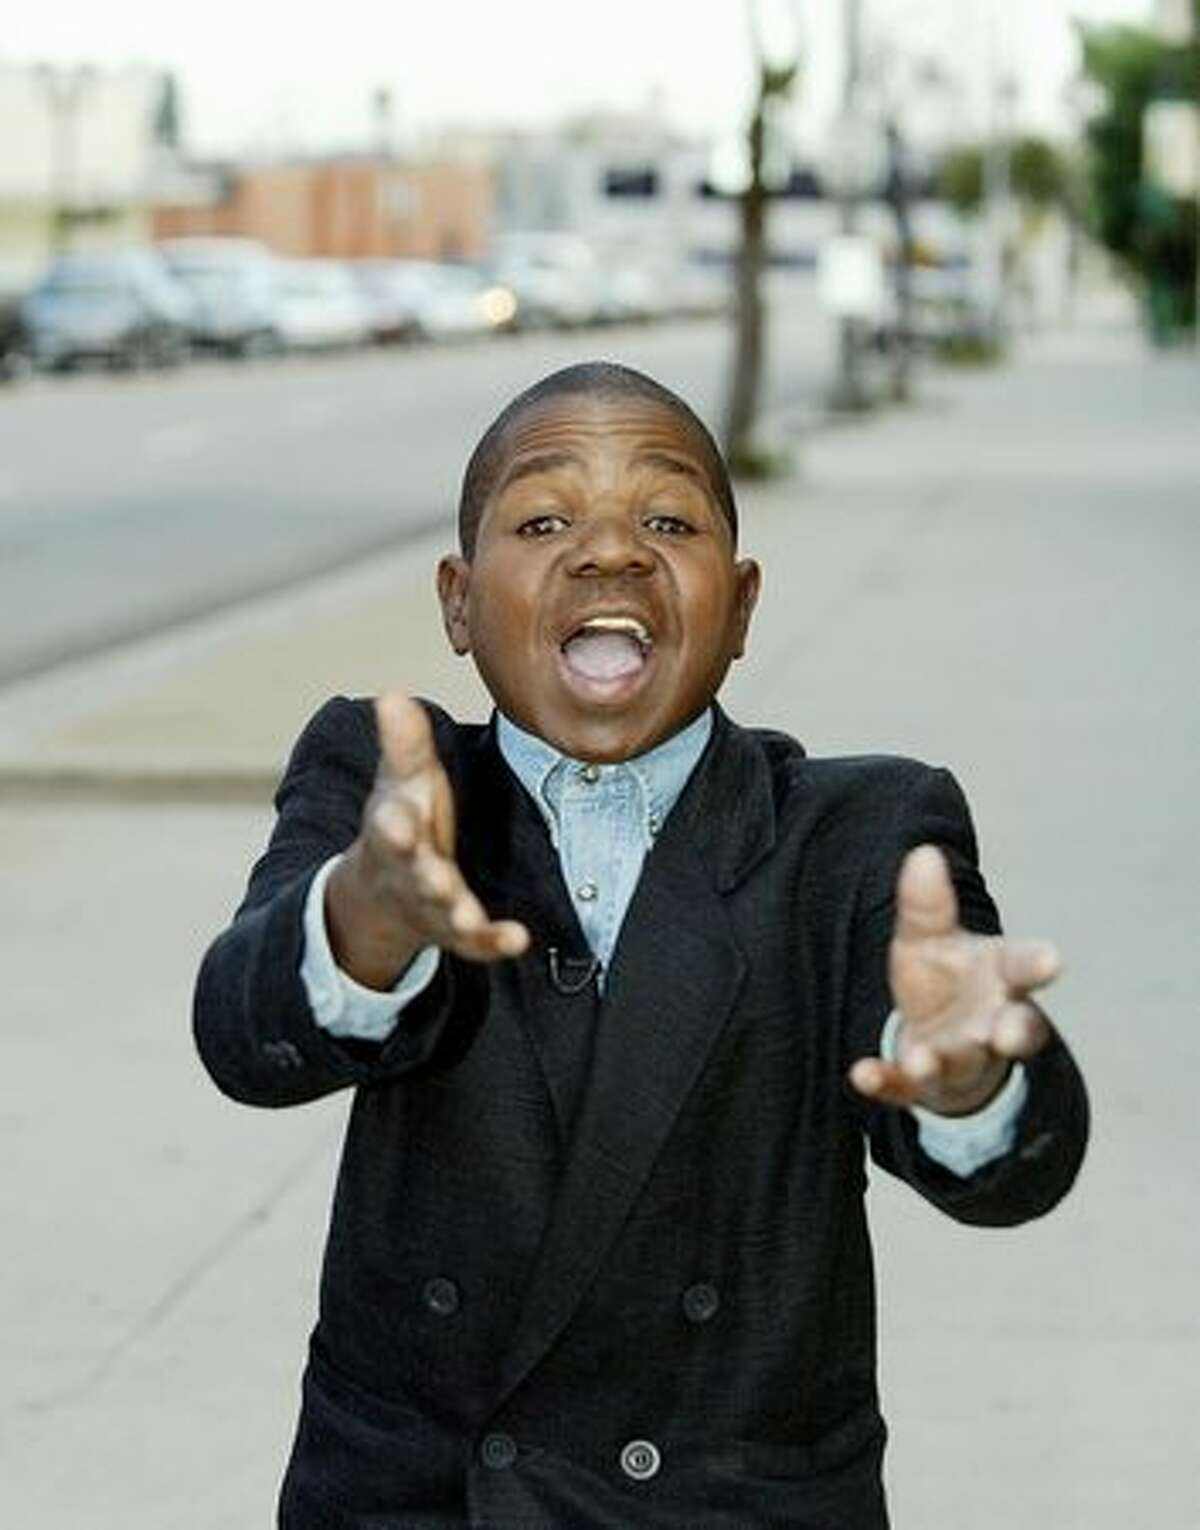 Former child actor Gary Coleman gestures on Sunset Boulevard in Los Angeles on Aug. 13, 2003. Coleman, 34, is one of more than 100 candidates in the California governor recall election.